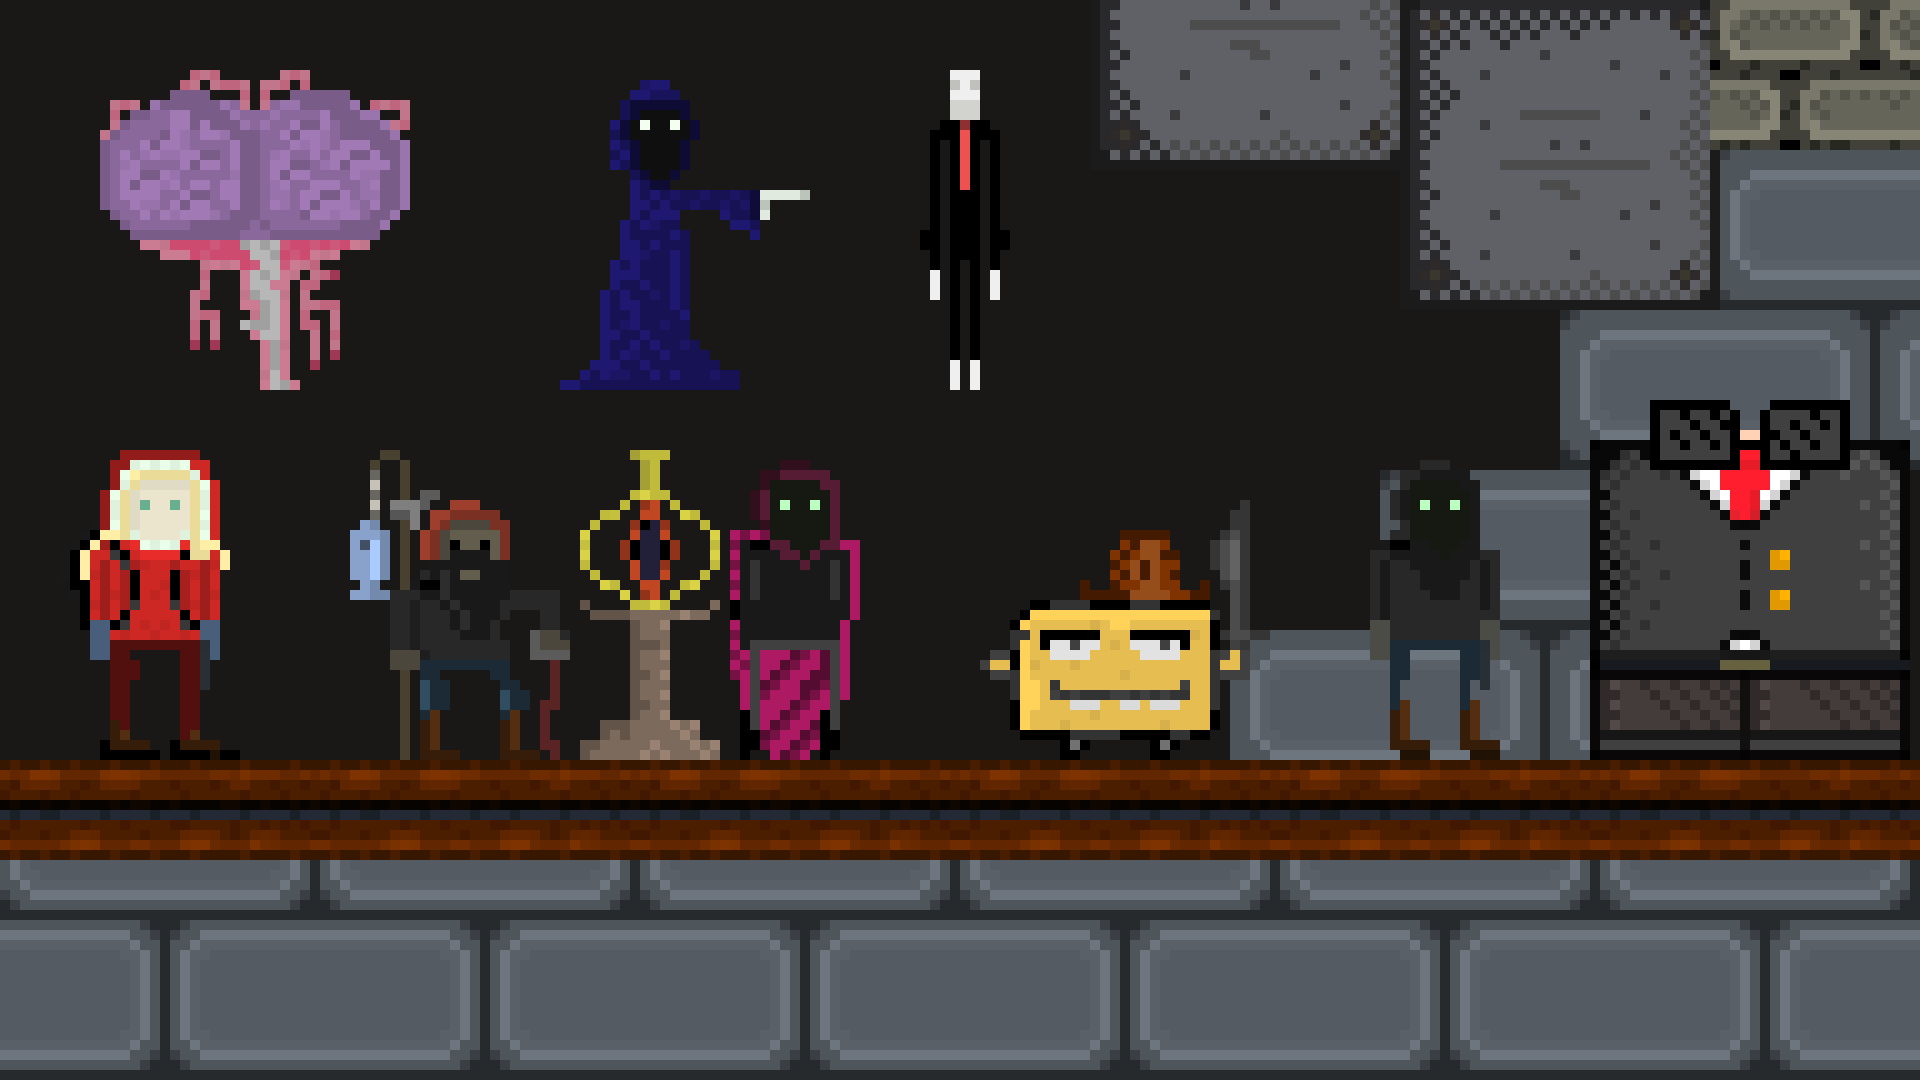 My pixel art - exploring 'character' creation because I suck at it!